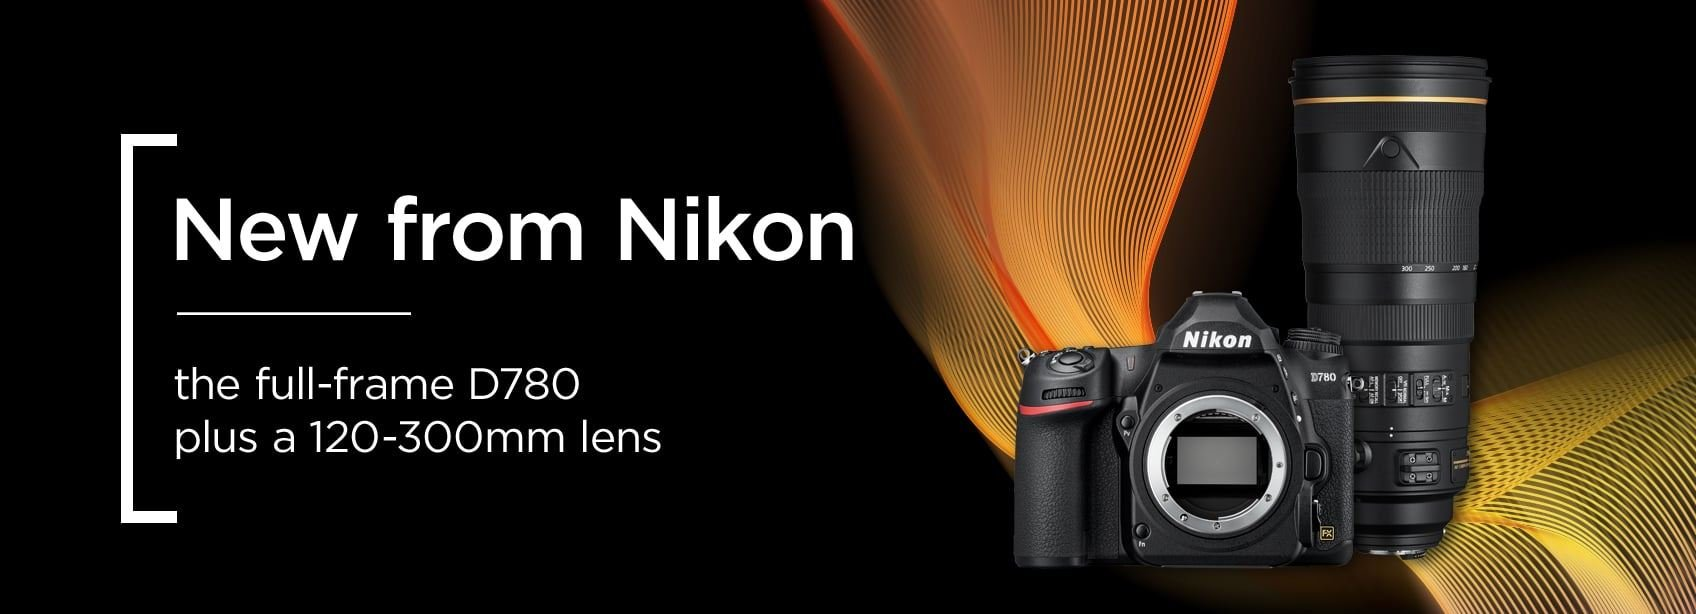 New from Nikon the full frame D780 plus a 120-300mm lens